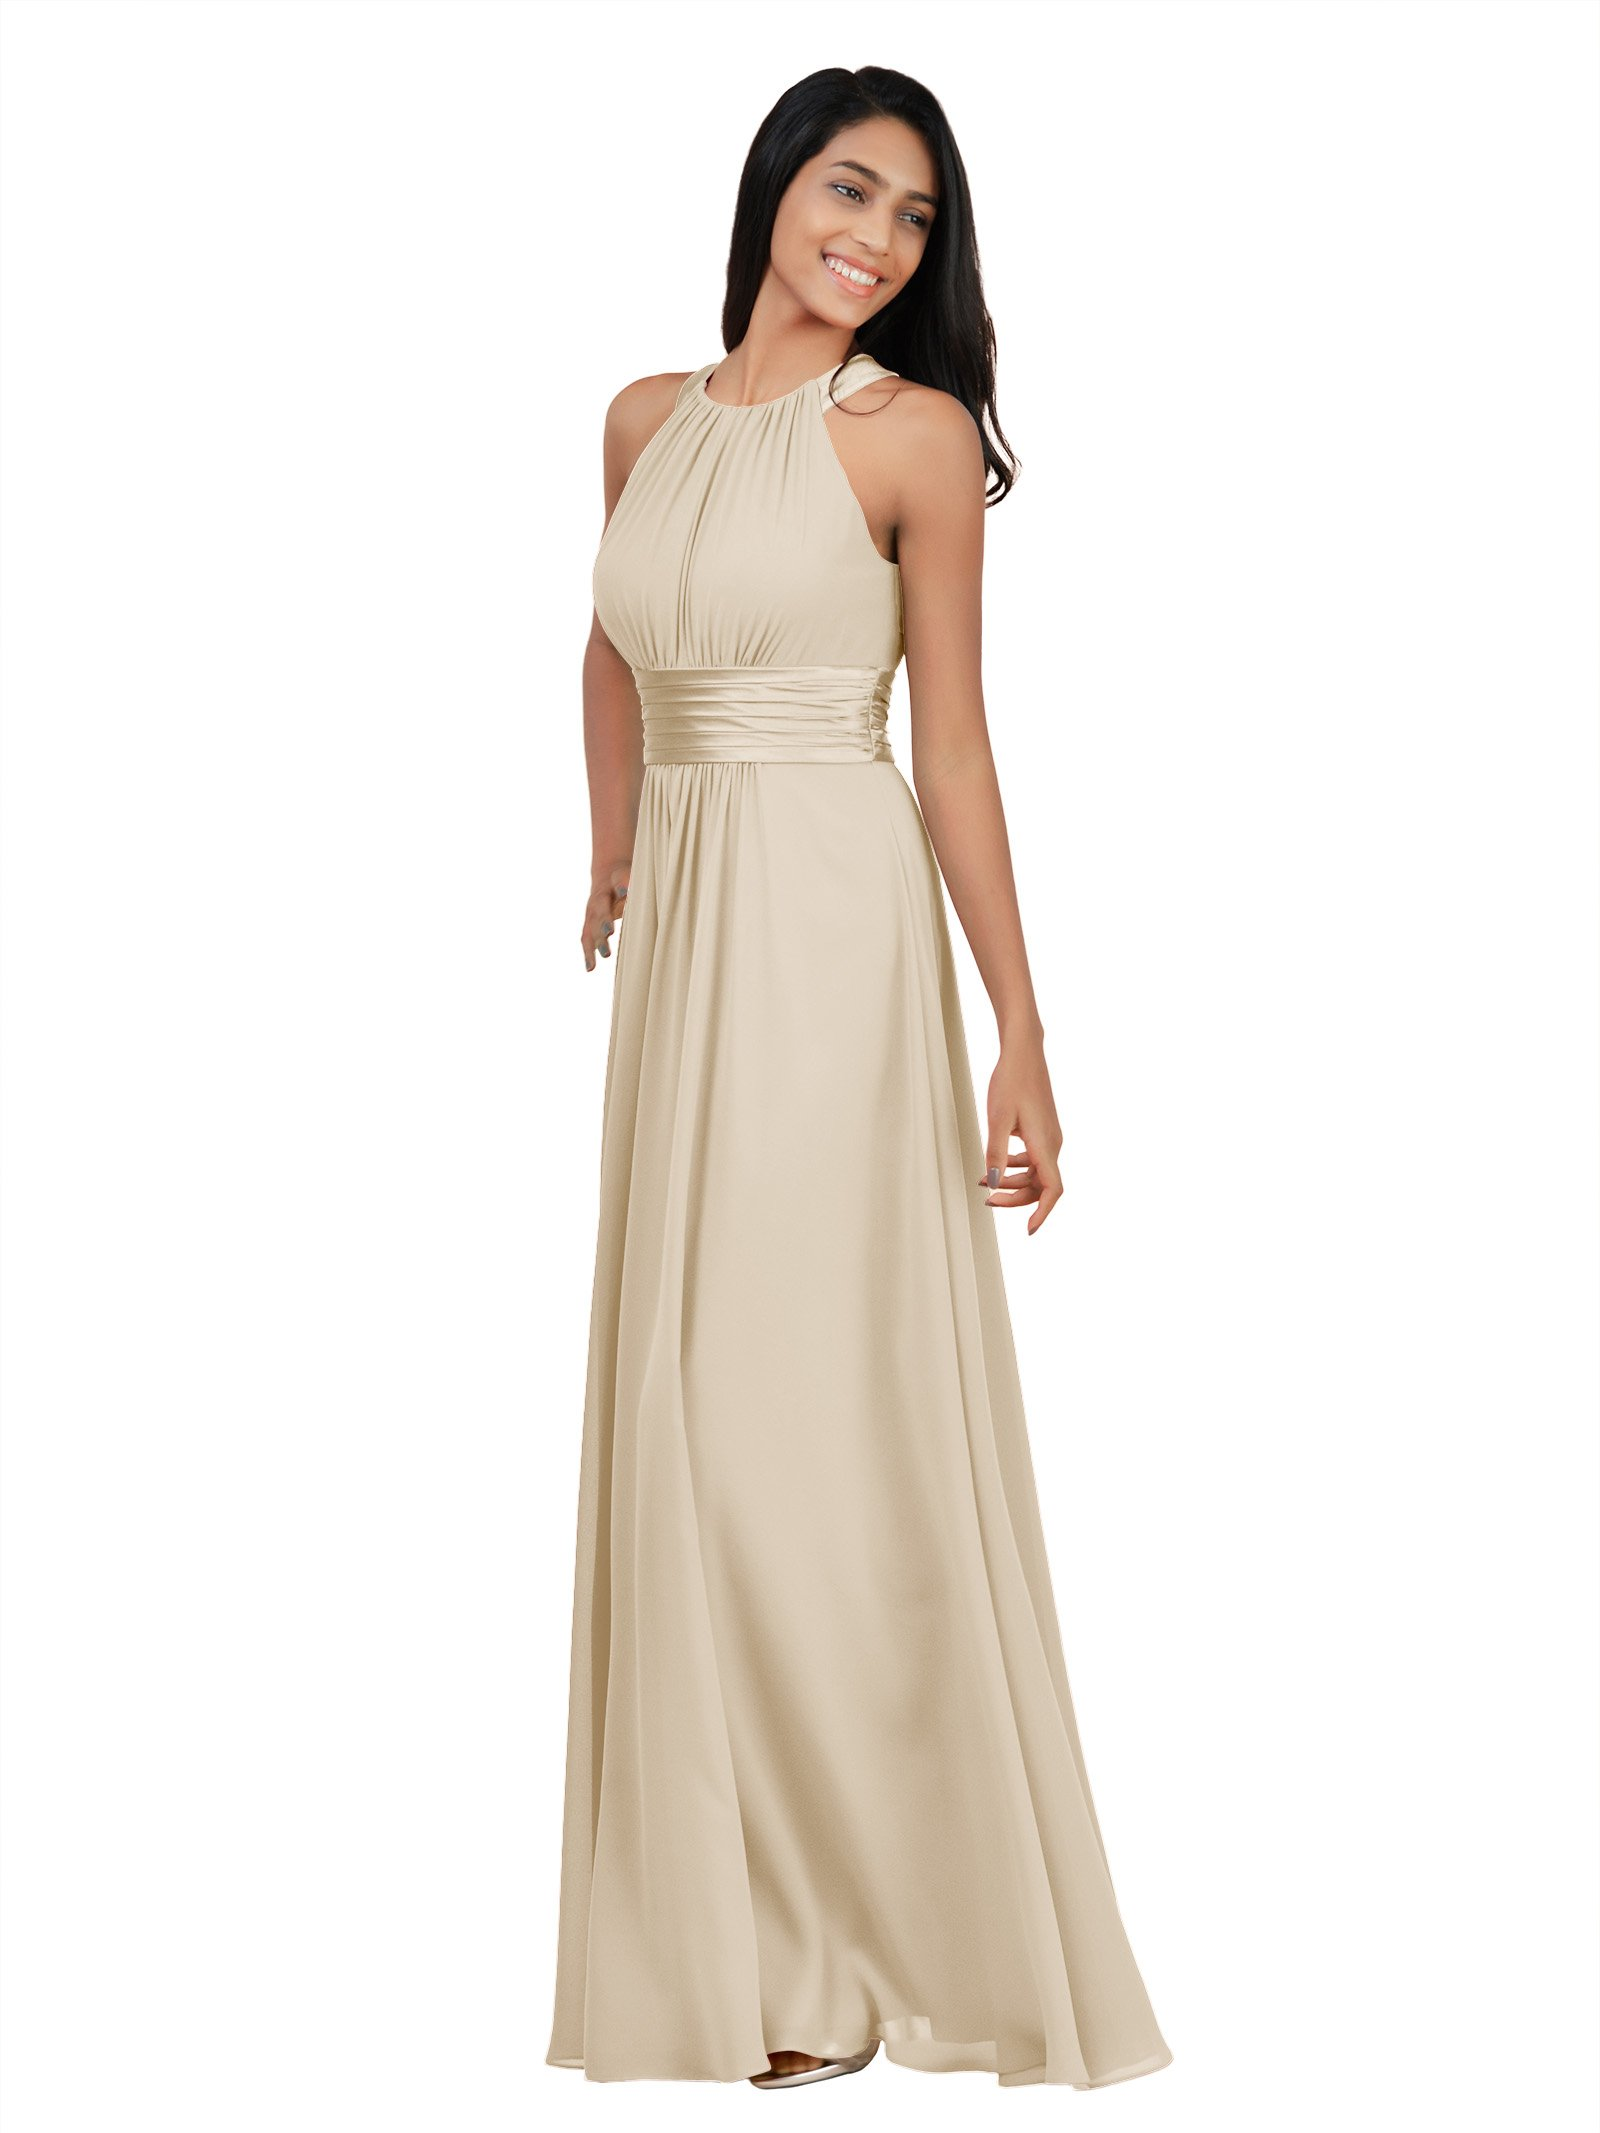 542ad5bd2b2 Alicepub Sleeveless Bridesmaid Dresses Long for Women Formal Elegant Halter  Evening Dresses for Weddings Empire Maxi Party Prom Gown